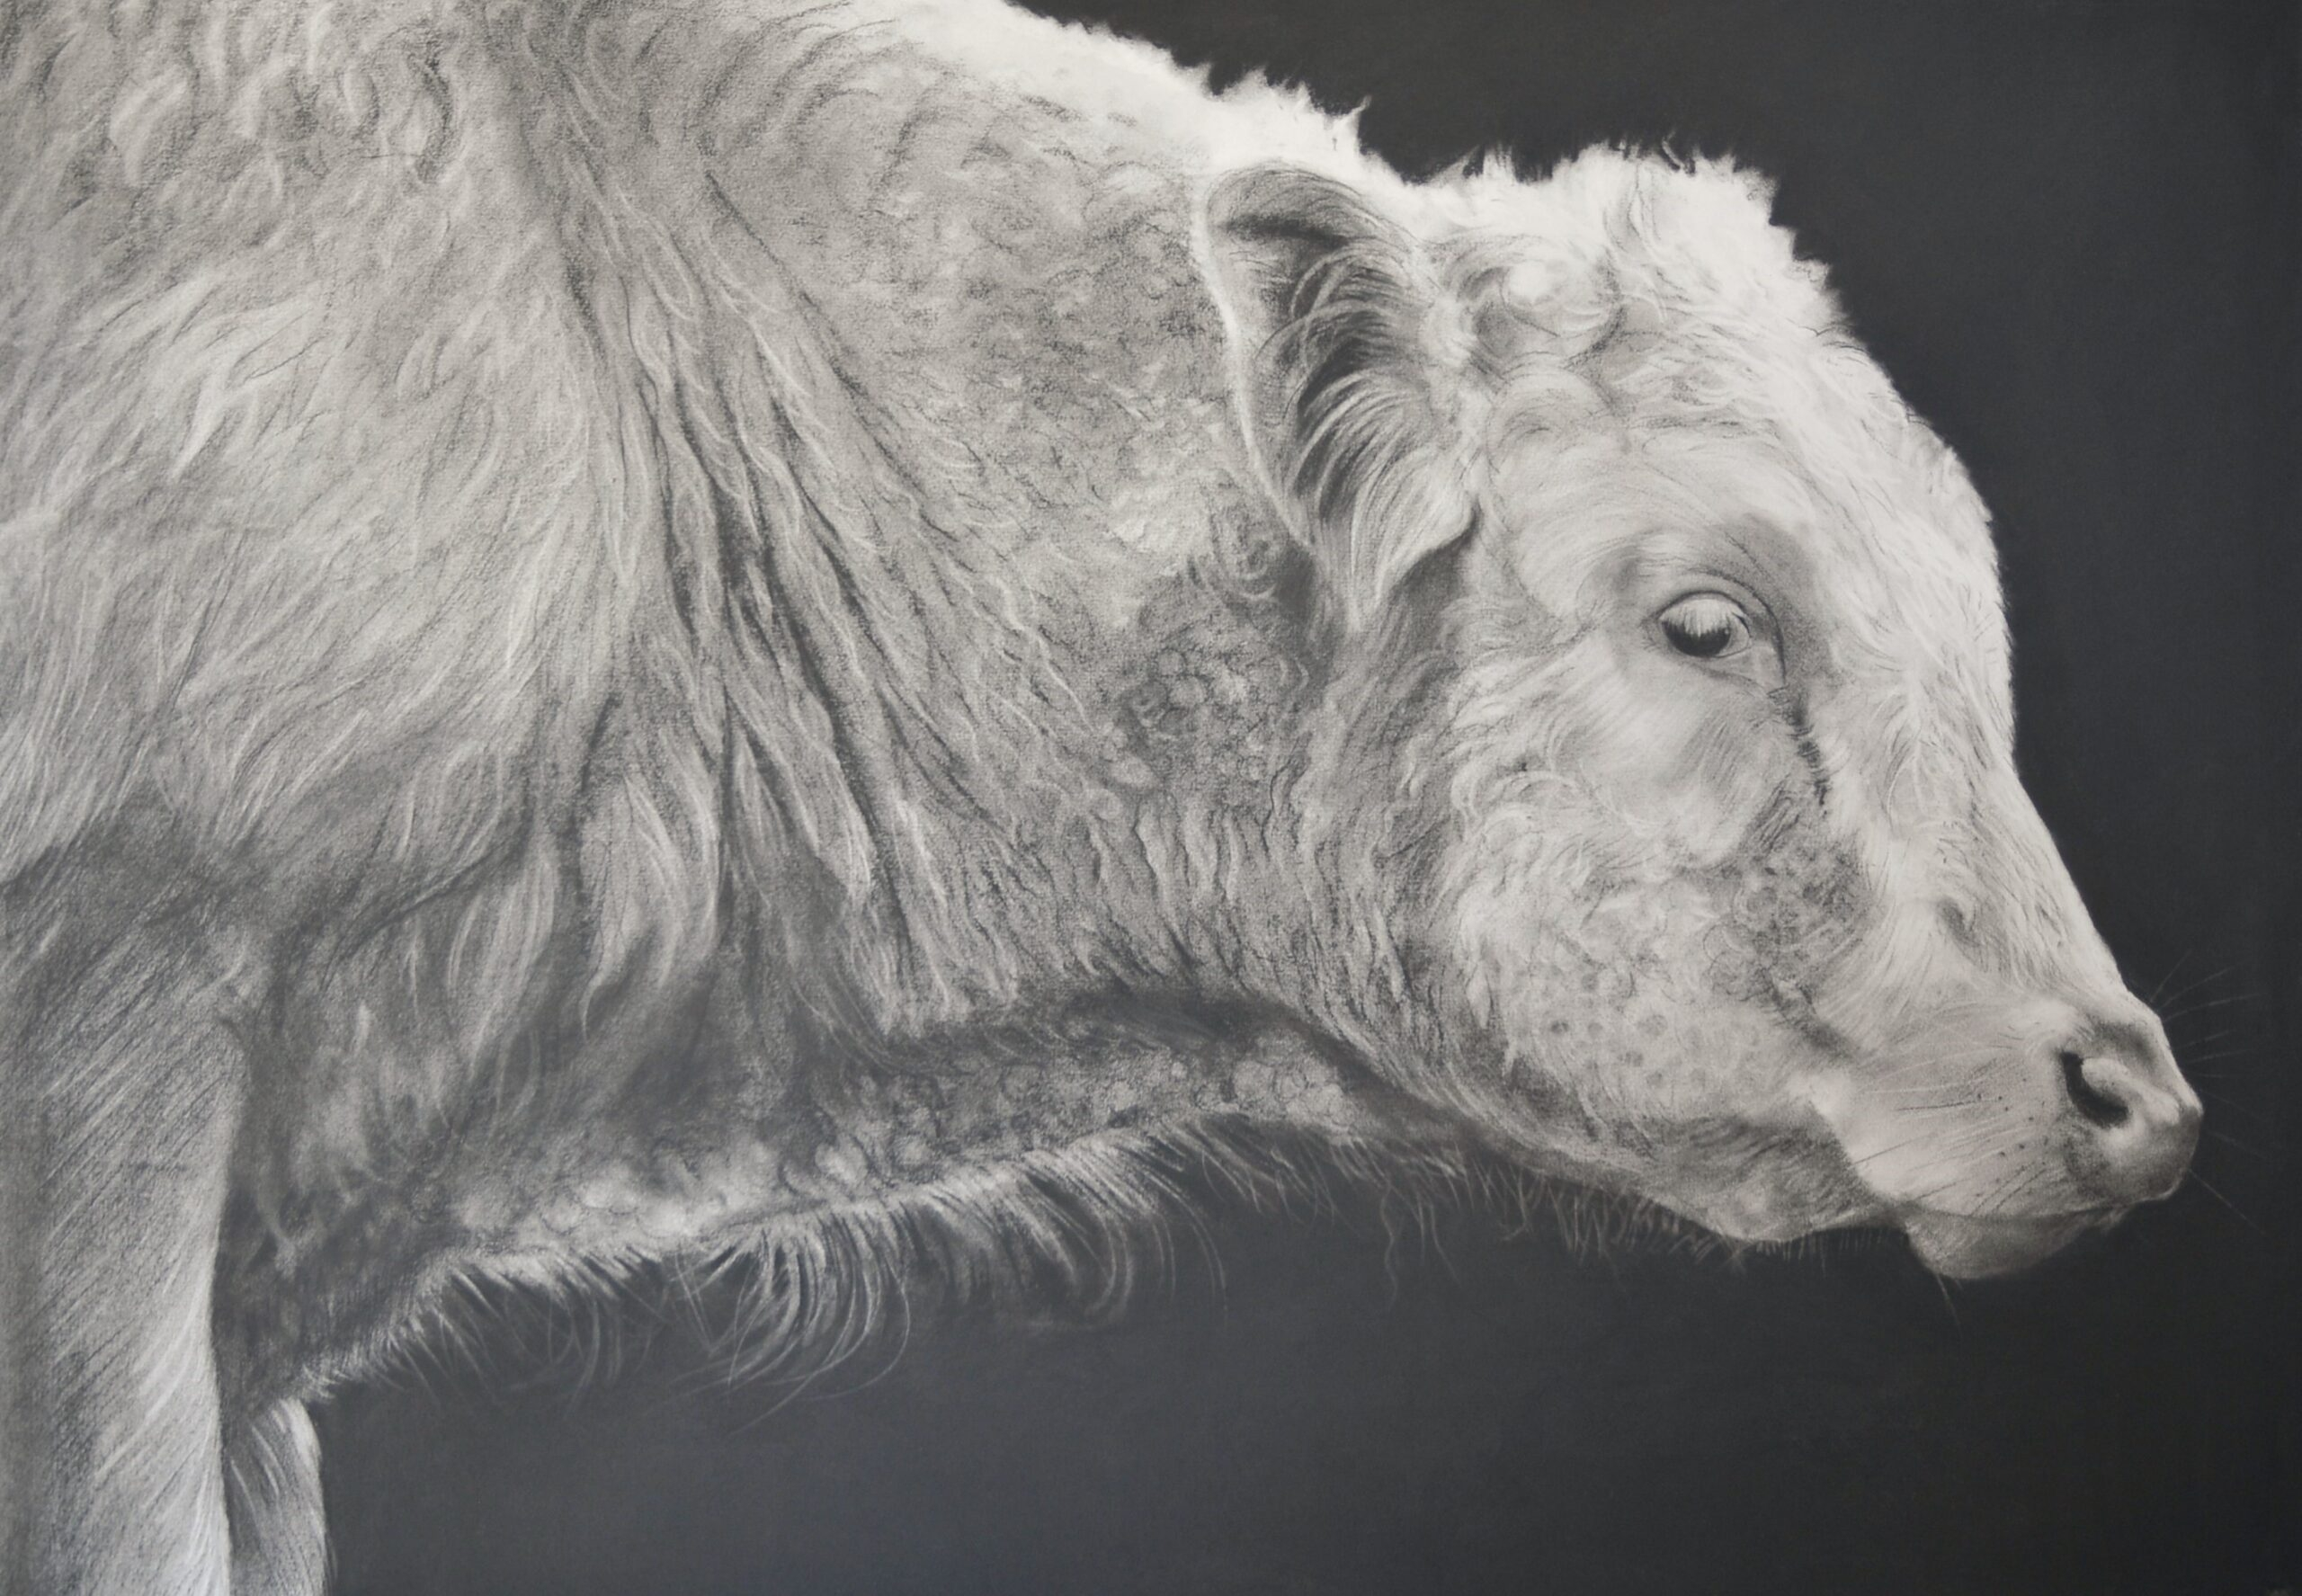 Charcoal drawing of a bullock head and shoulders